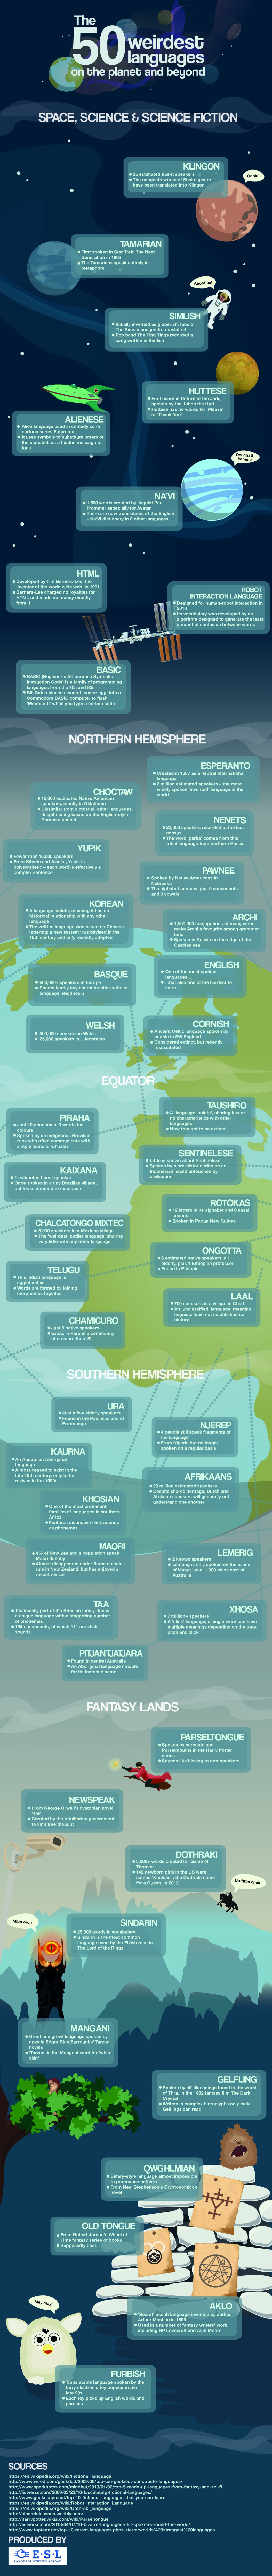 The 50 Weirdest Languages (On the planet and beyond!) Infographic